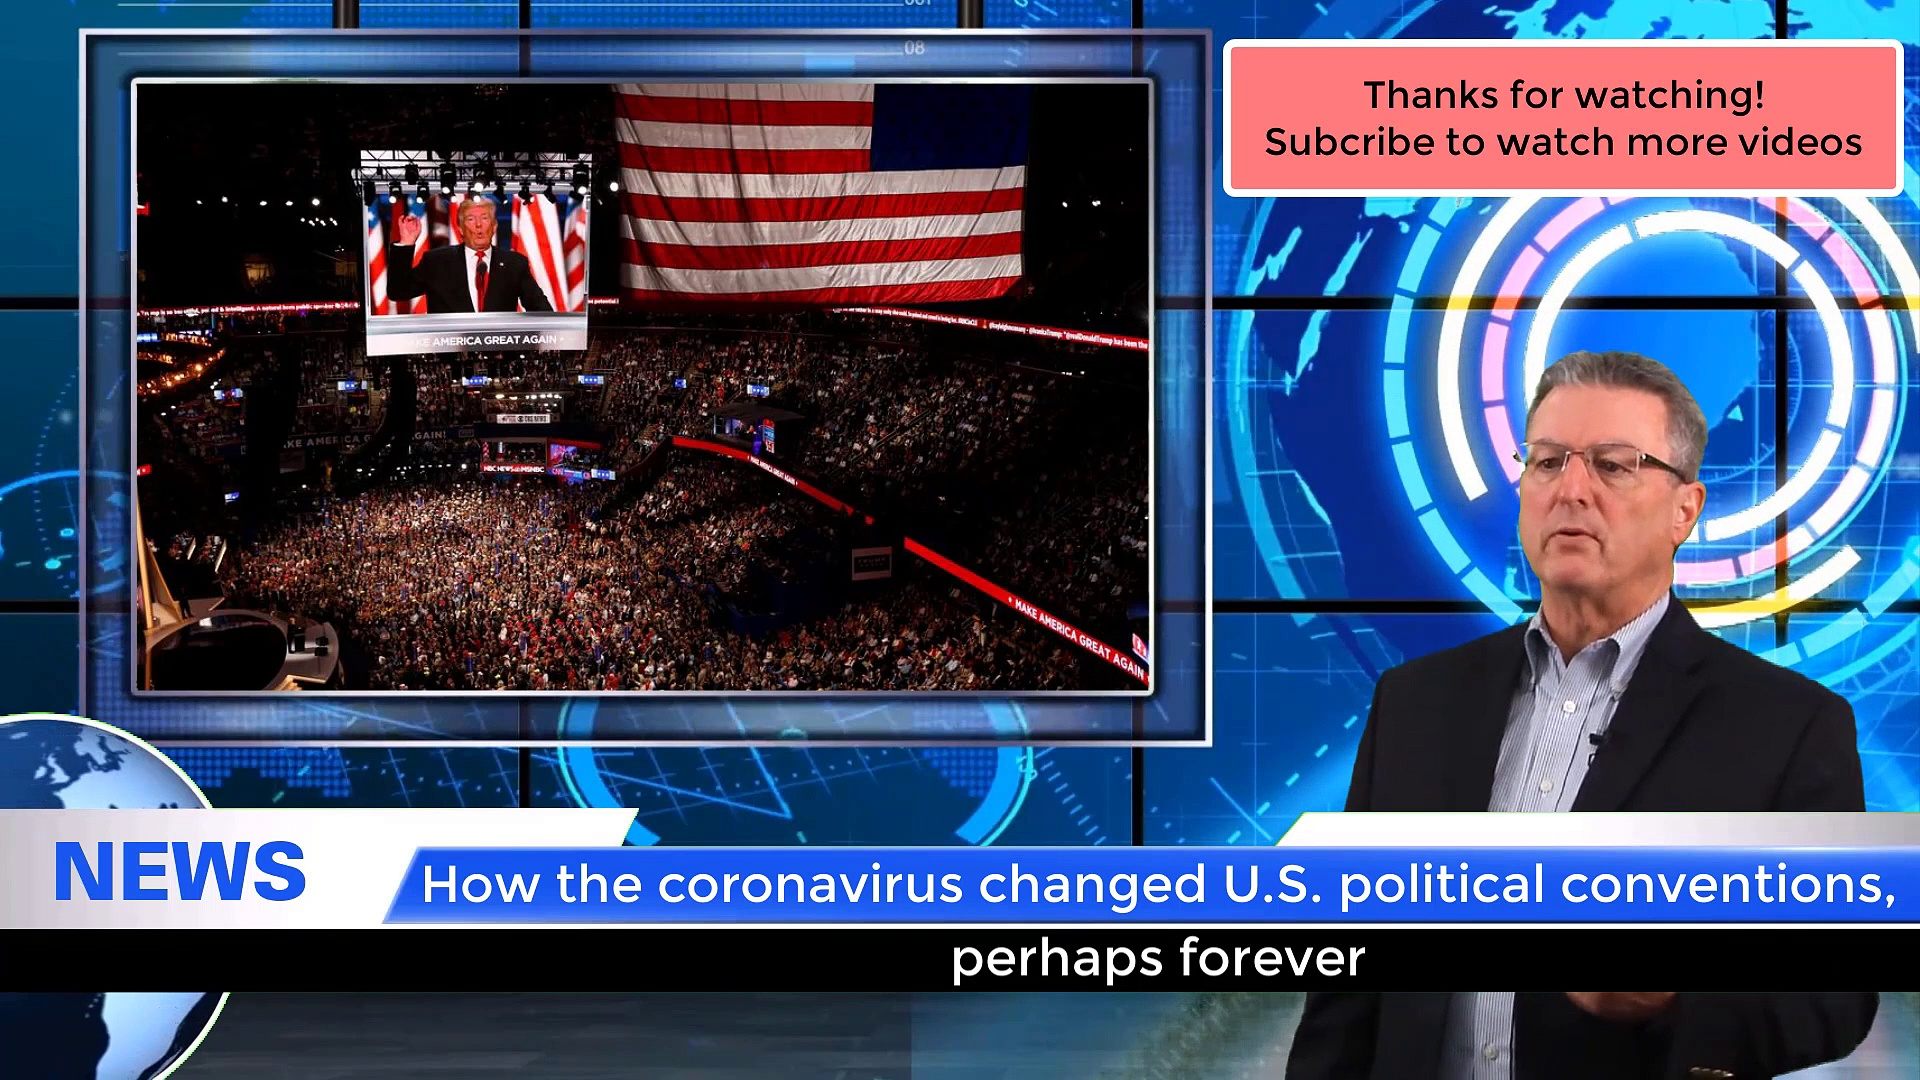 #NEWS| How the coronavirus changed U.S. political conventions, perhaps forever